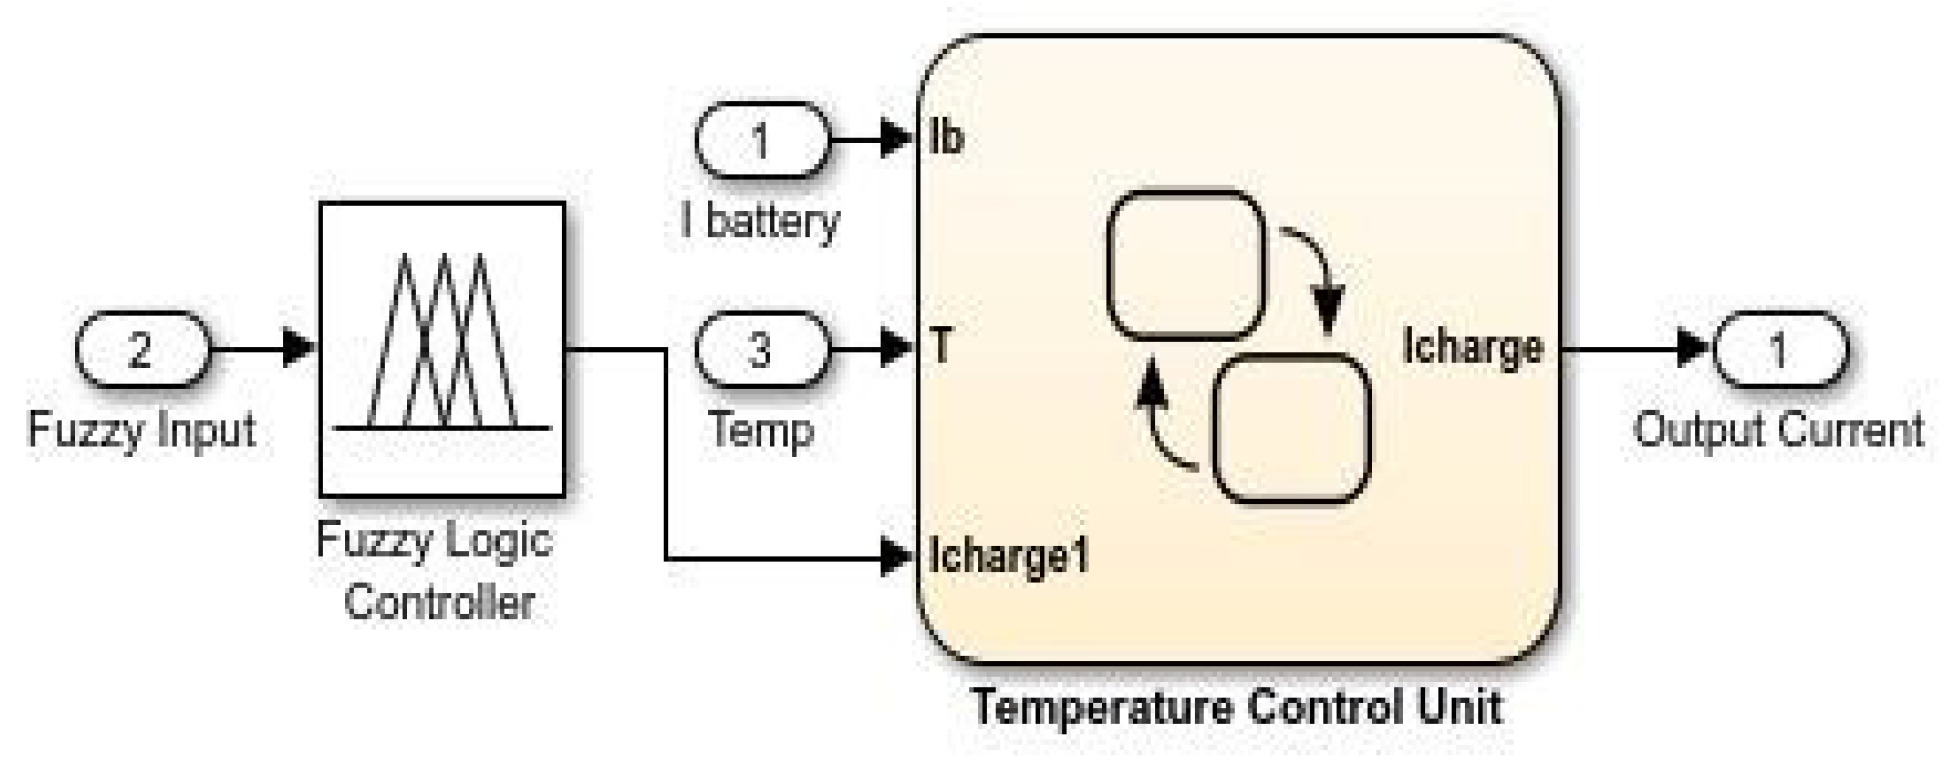 Energies   Free Full-Text   A Real-Time Simulink Interfaced Fast